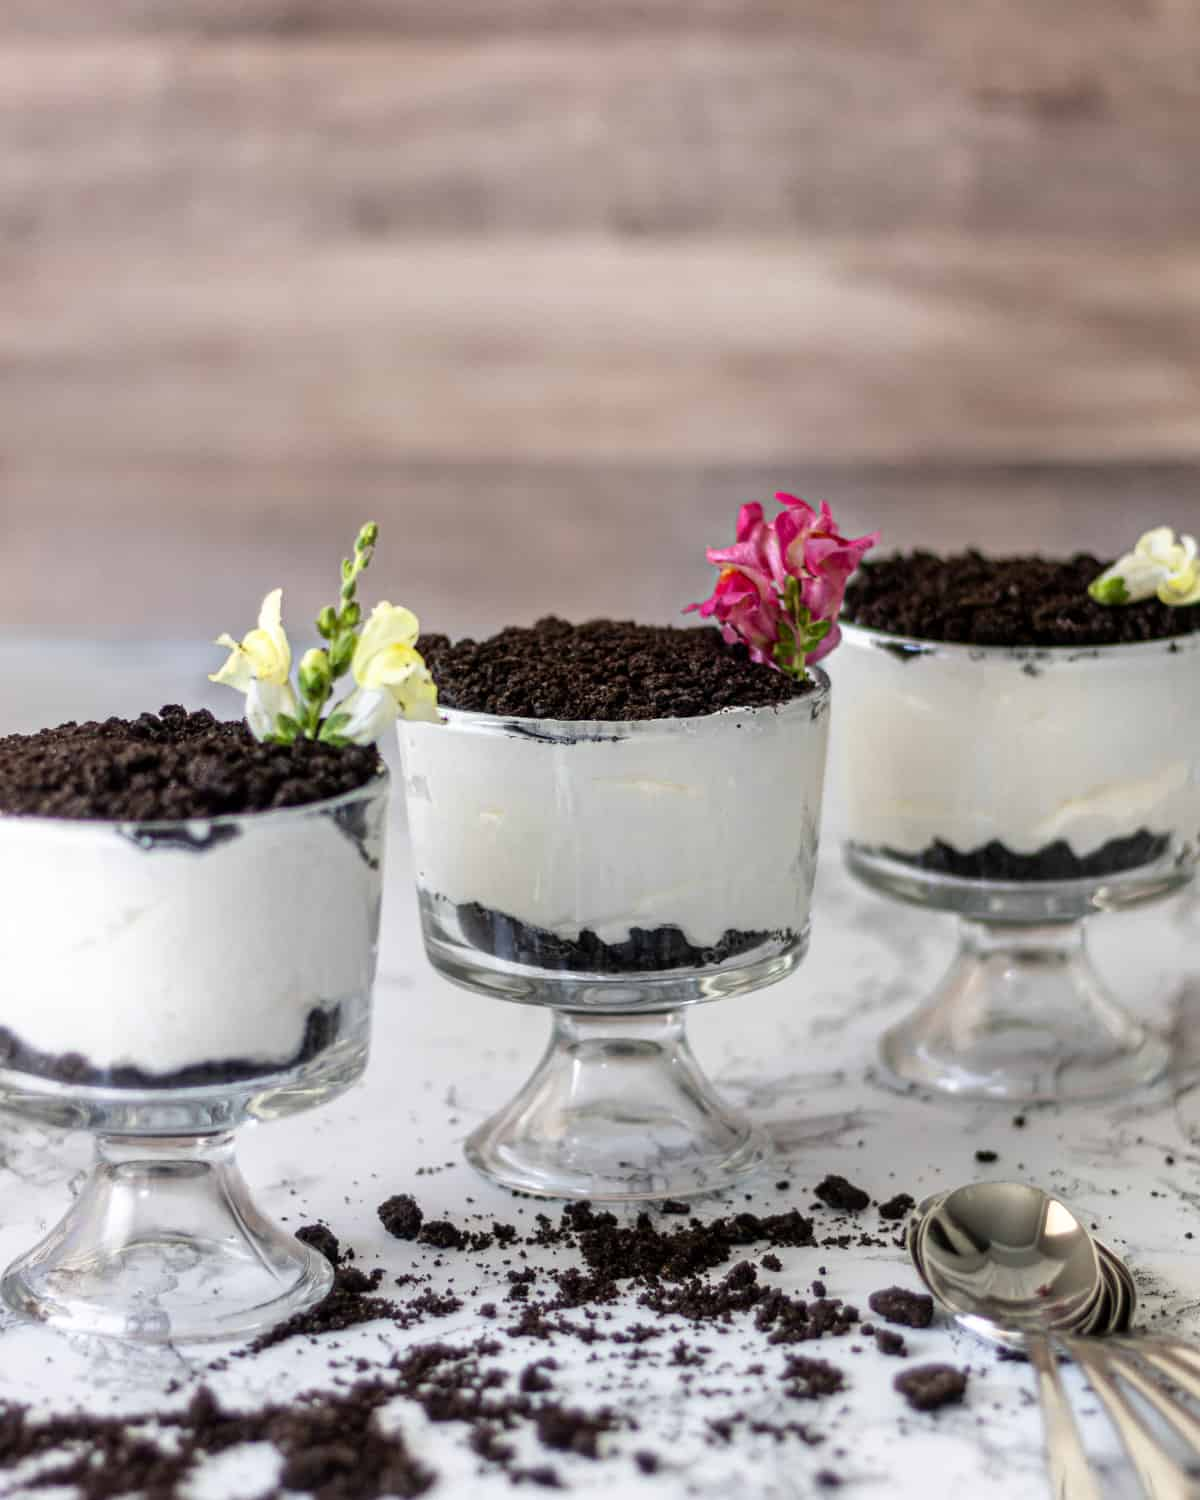 3 individual bowls of Kansas dirt cake with snapdragons on top. Crumbs on the counter and spoons in the corner.